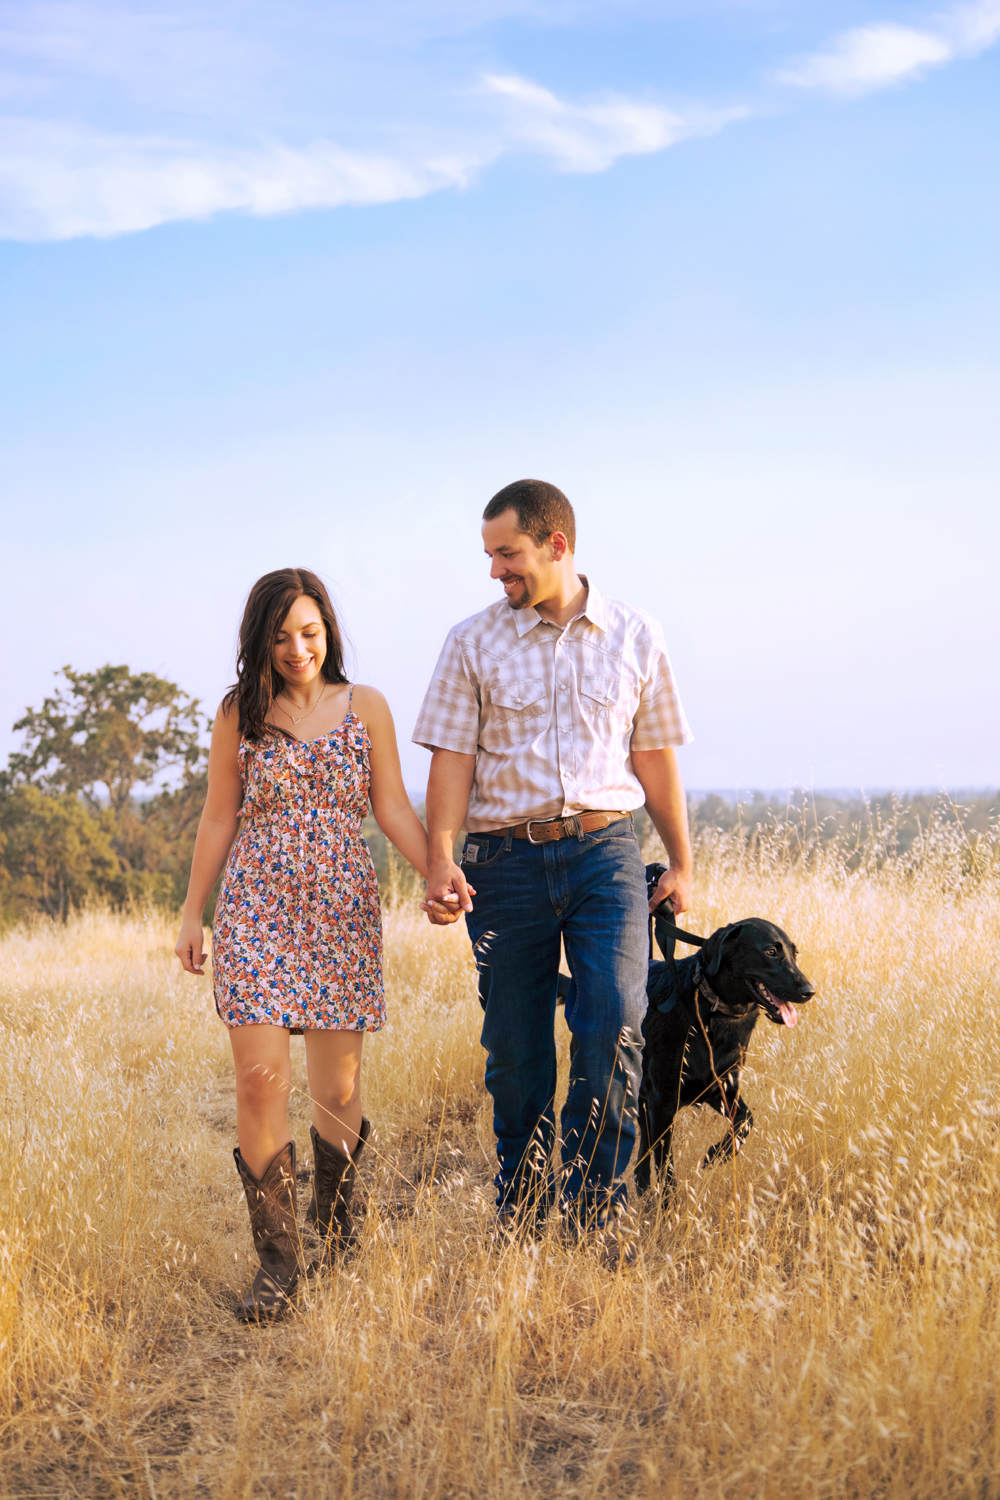 Engagement-with-Dog-photography-Upper-Bidwel-Park-Chico-11-2.jpg